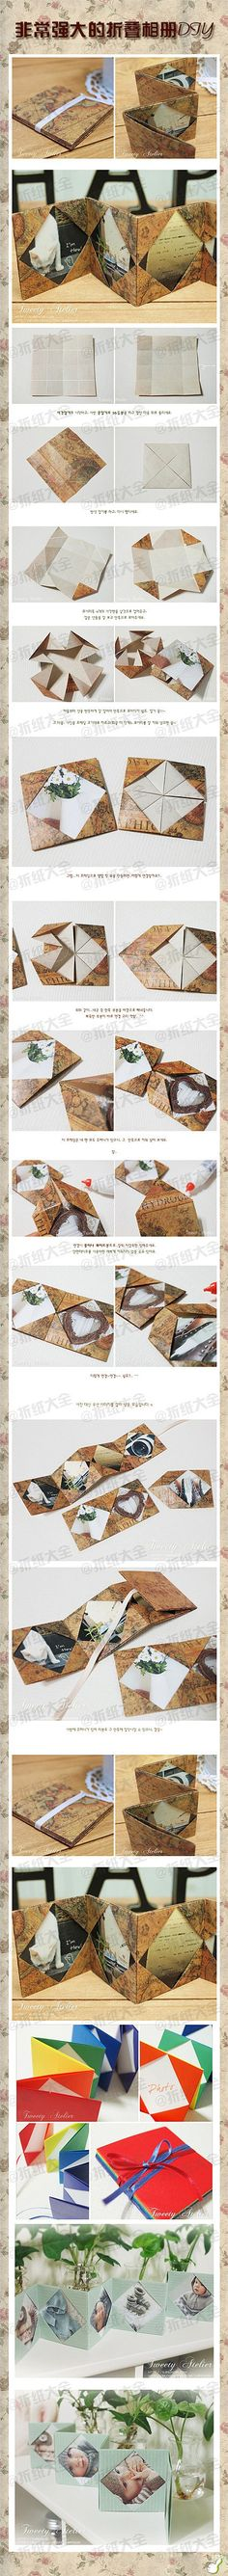 mini album foto origami  from http://sjrenoir.com/